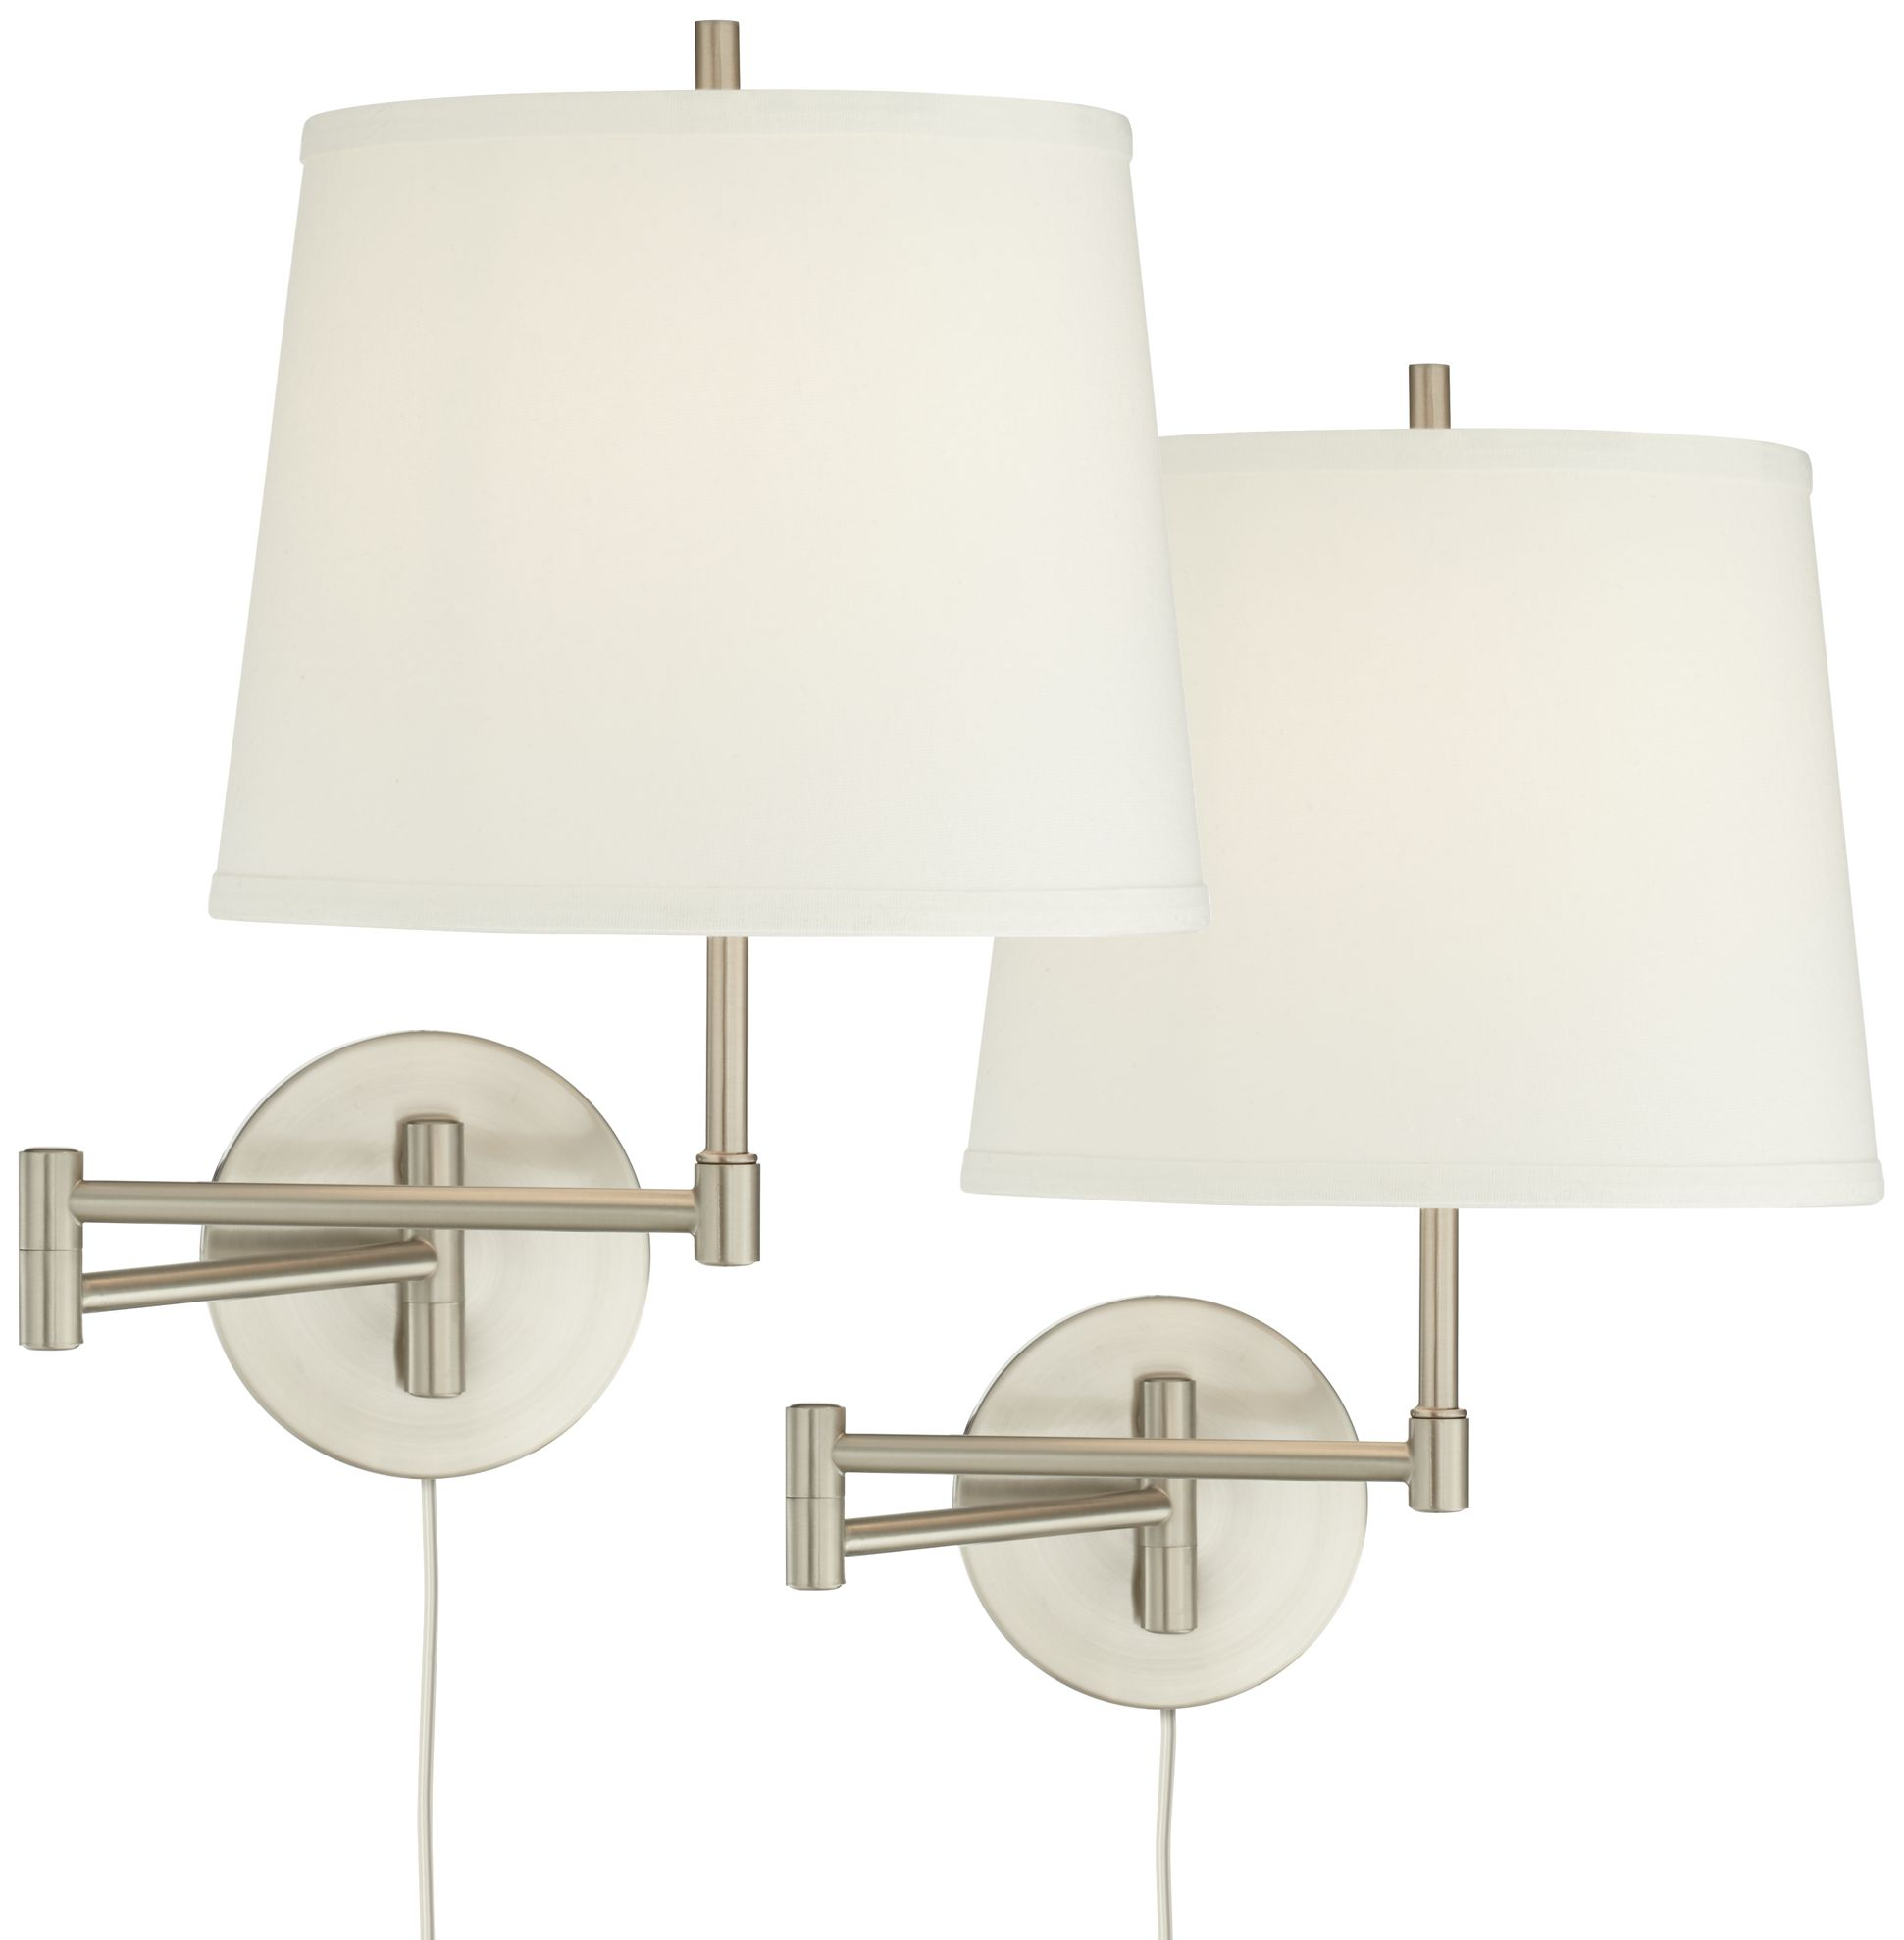 Swing Wall Lamp 360 Lighting Modern Swing Arm Wall Lamp Set Of 2 Brushed Nickel Off White Shade For Bedroom Living Room Reading